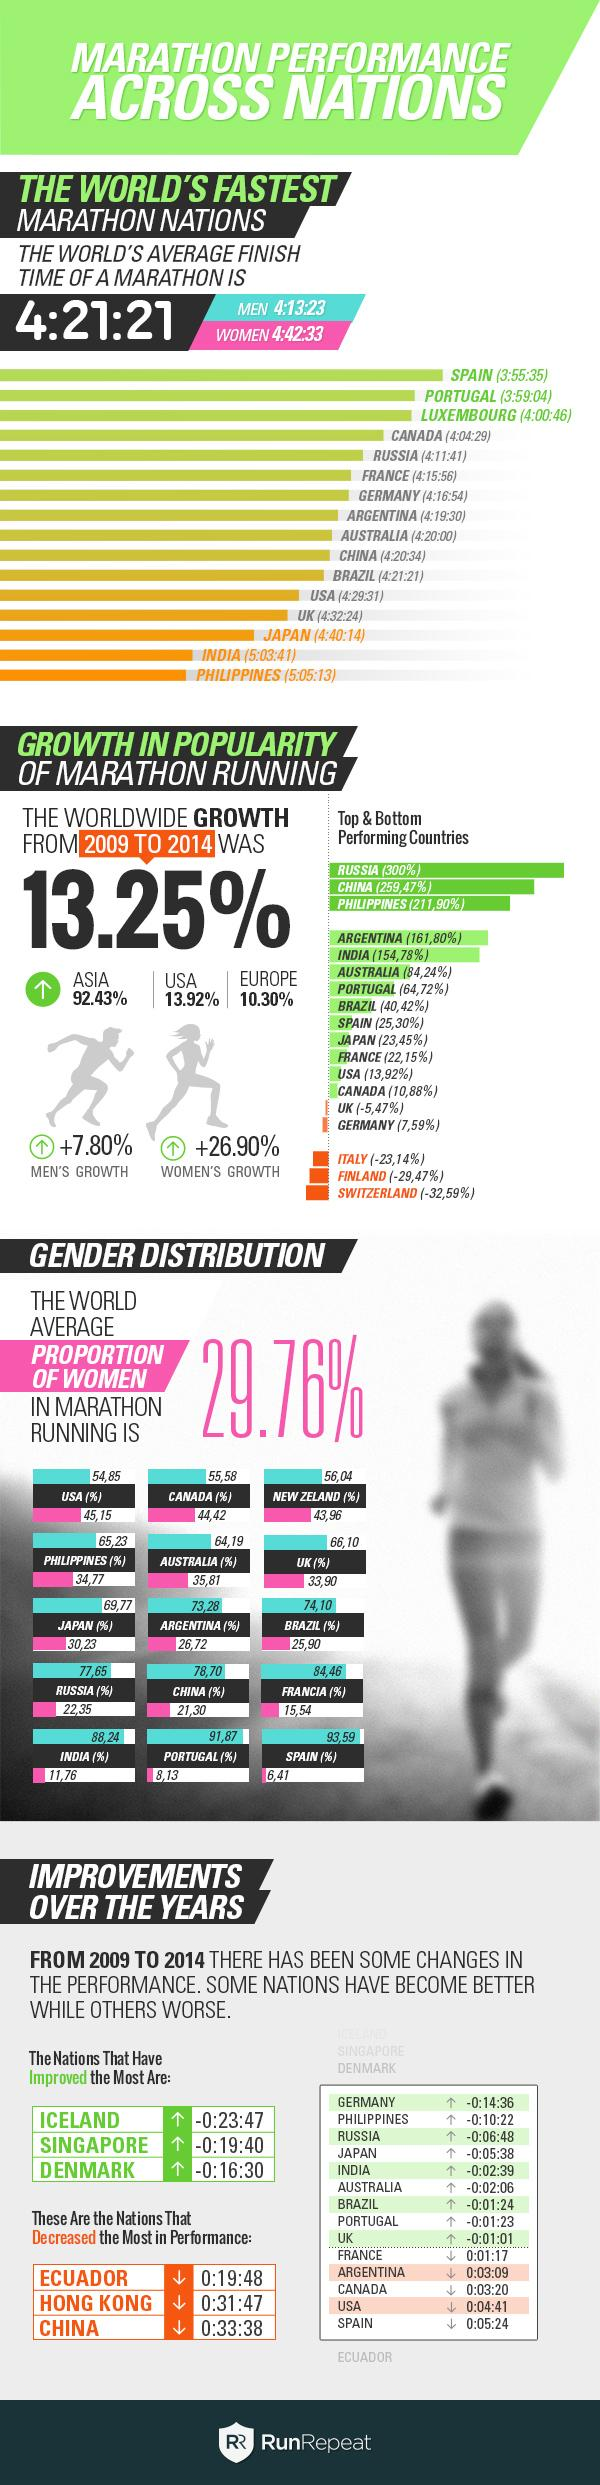 Research: Marathon Performance Across Nations